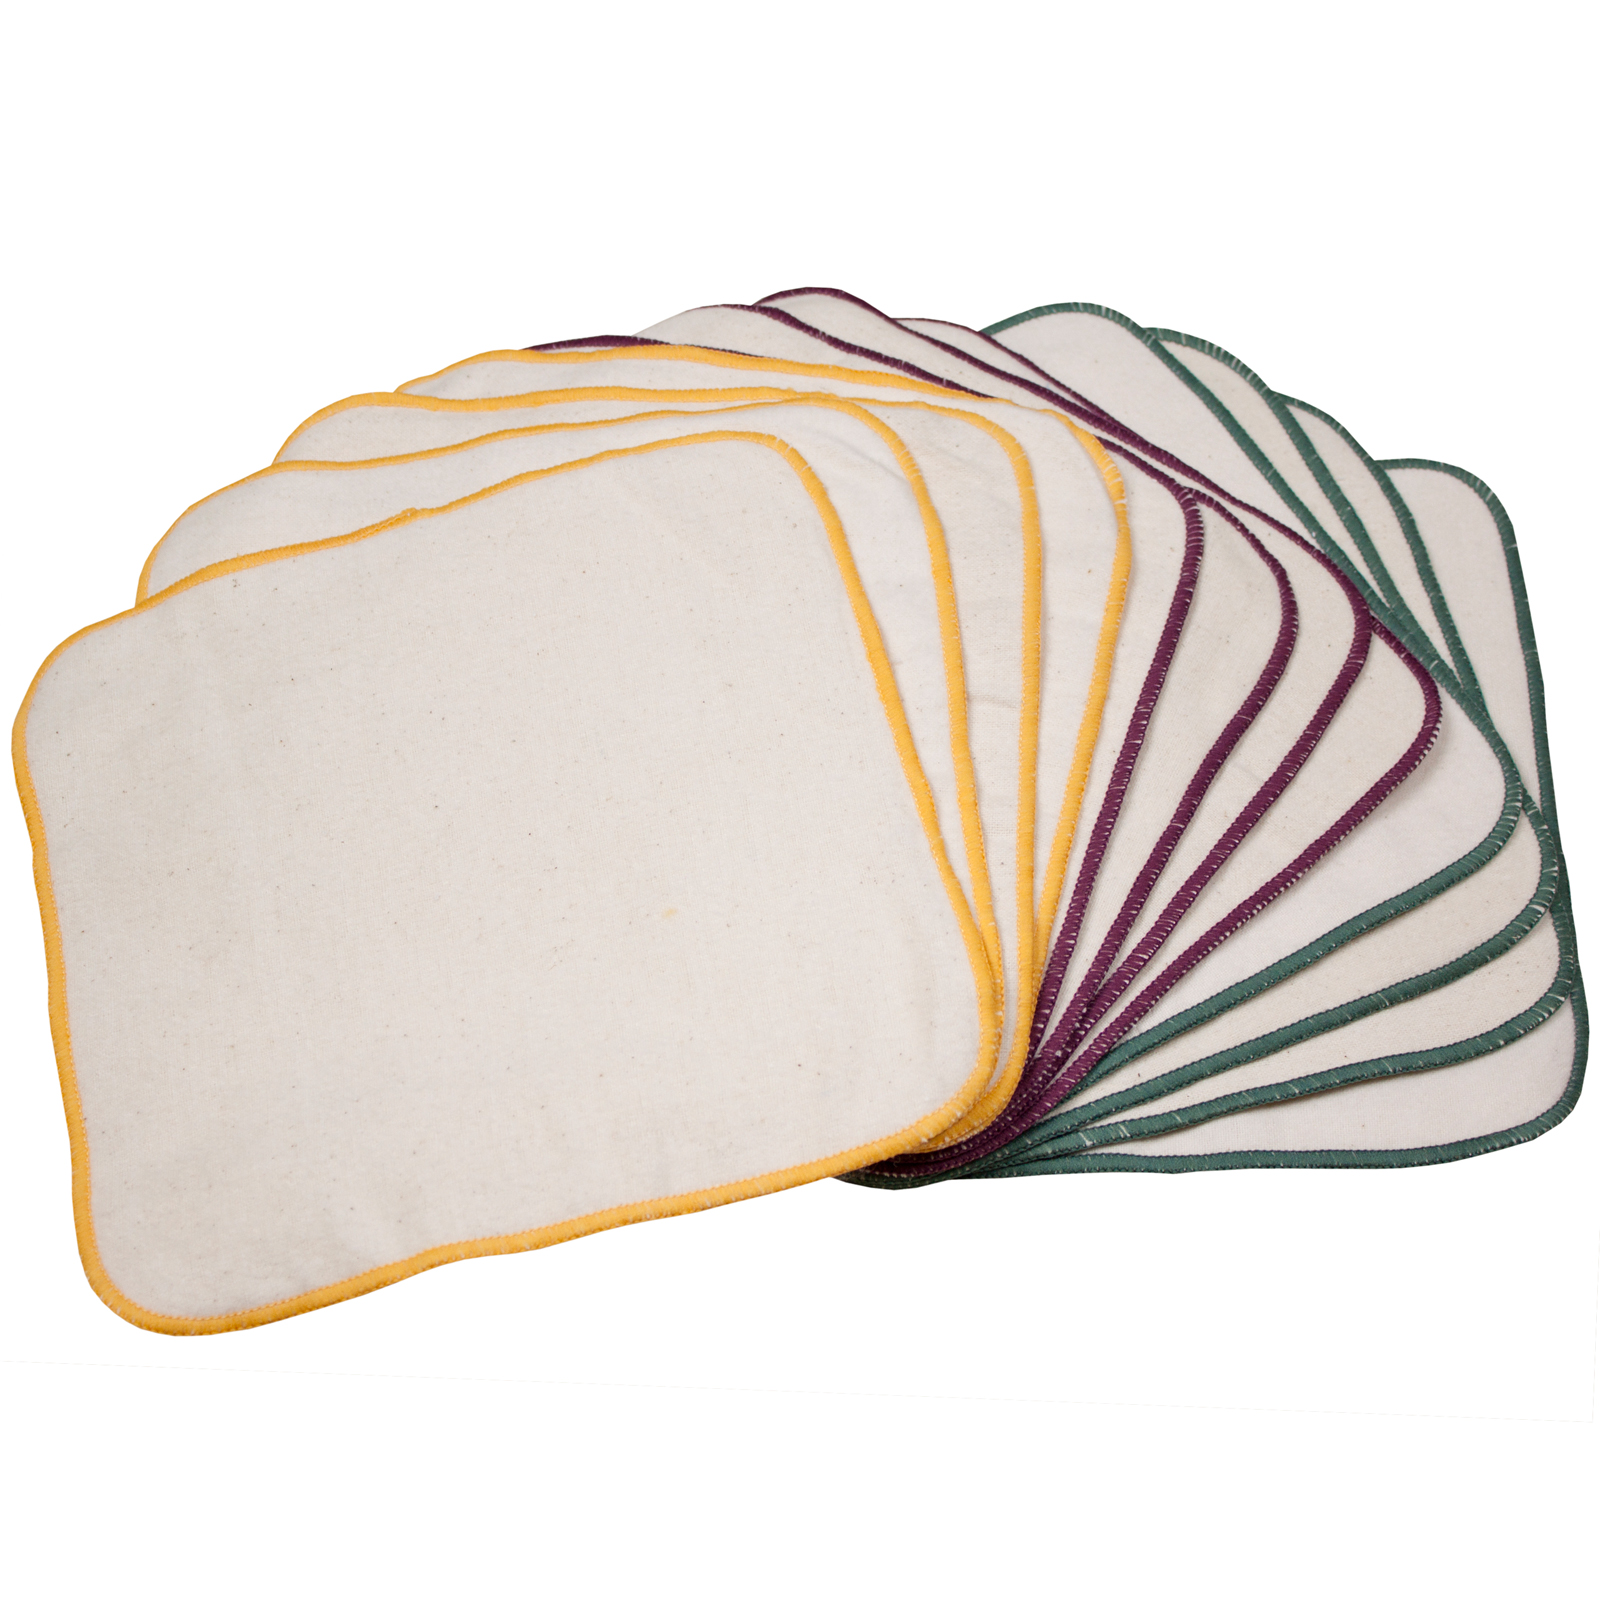 OsoCozy Terry Flannel Wipes - 12-pack